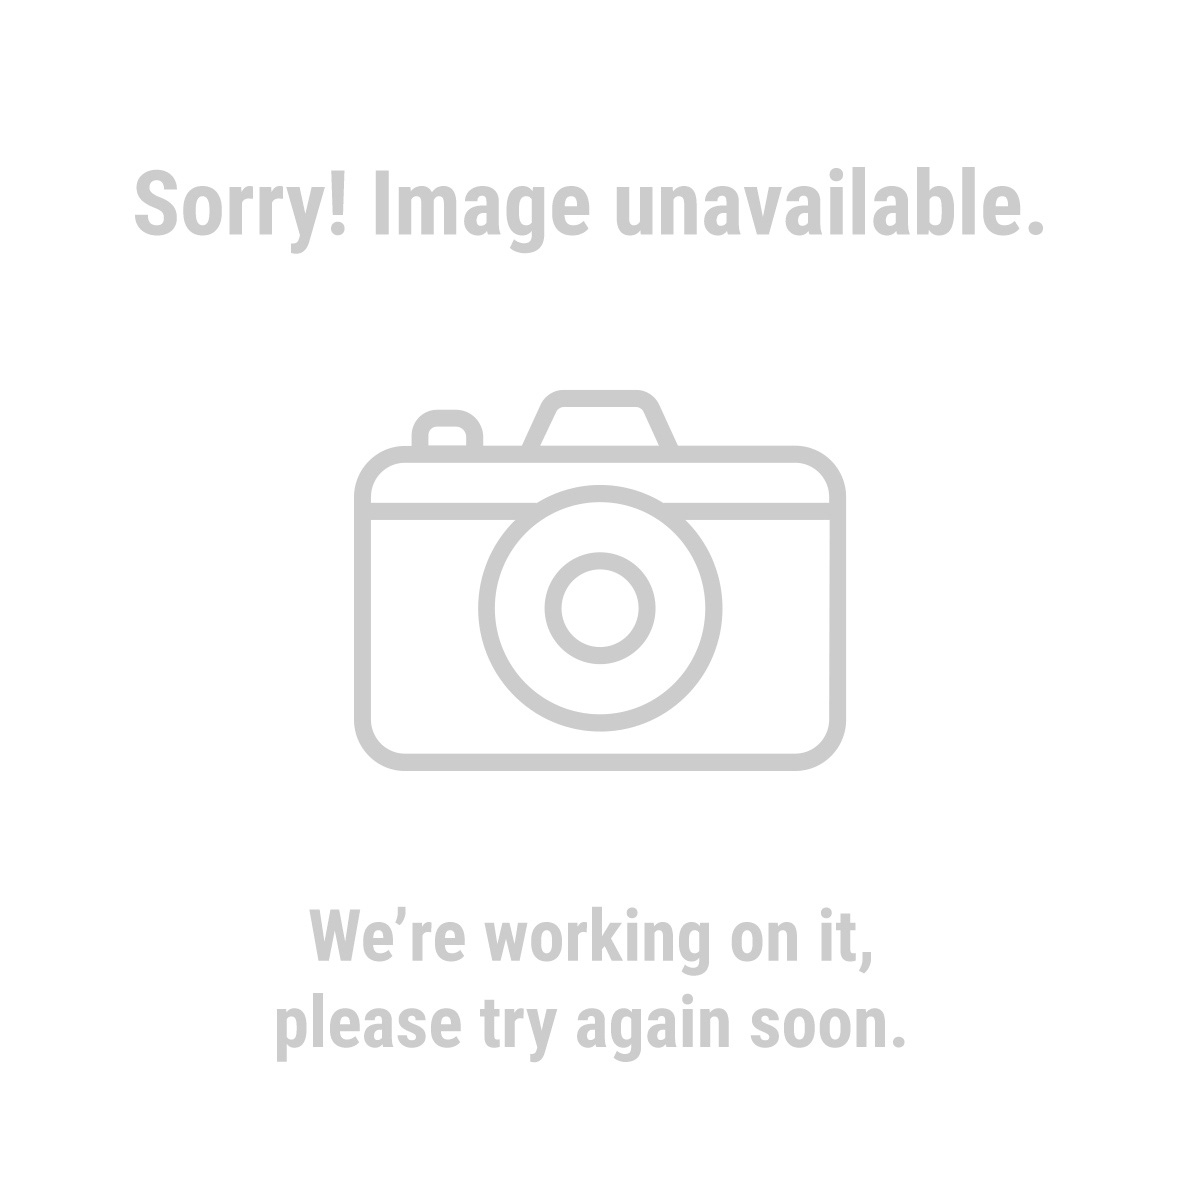 Pittsburgh 66707 Grommet Pliers with 100 Grommets